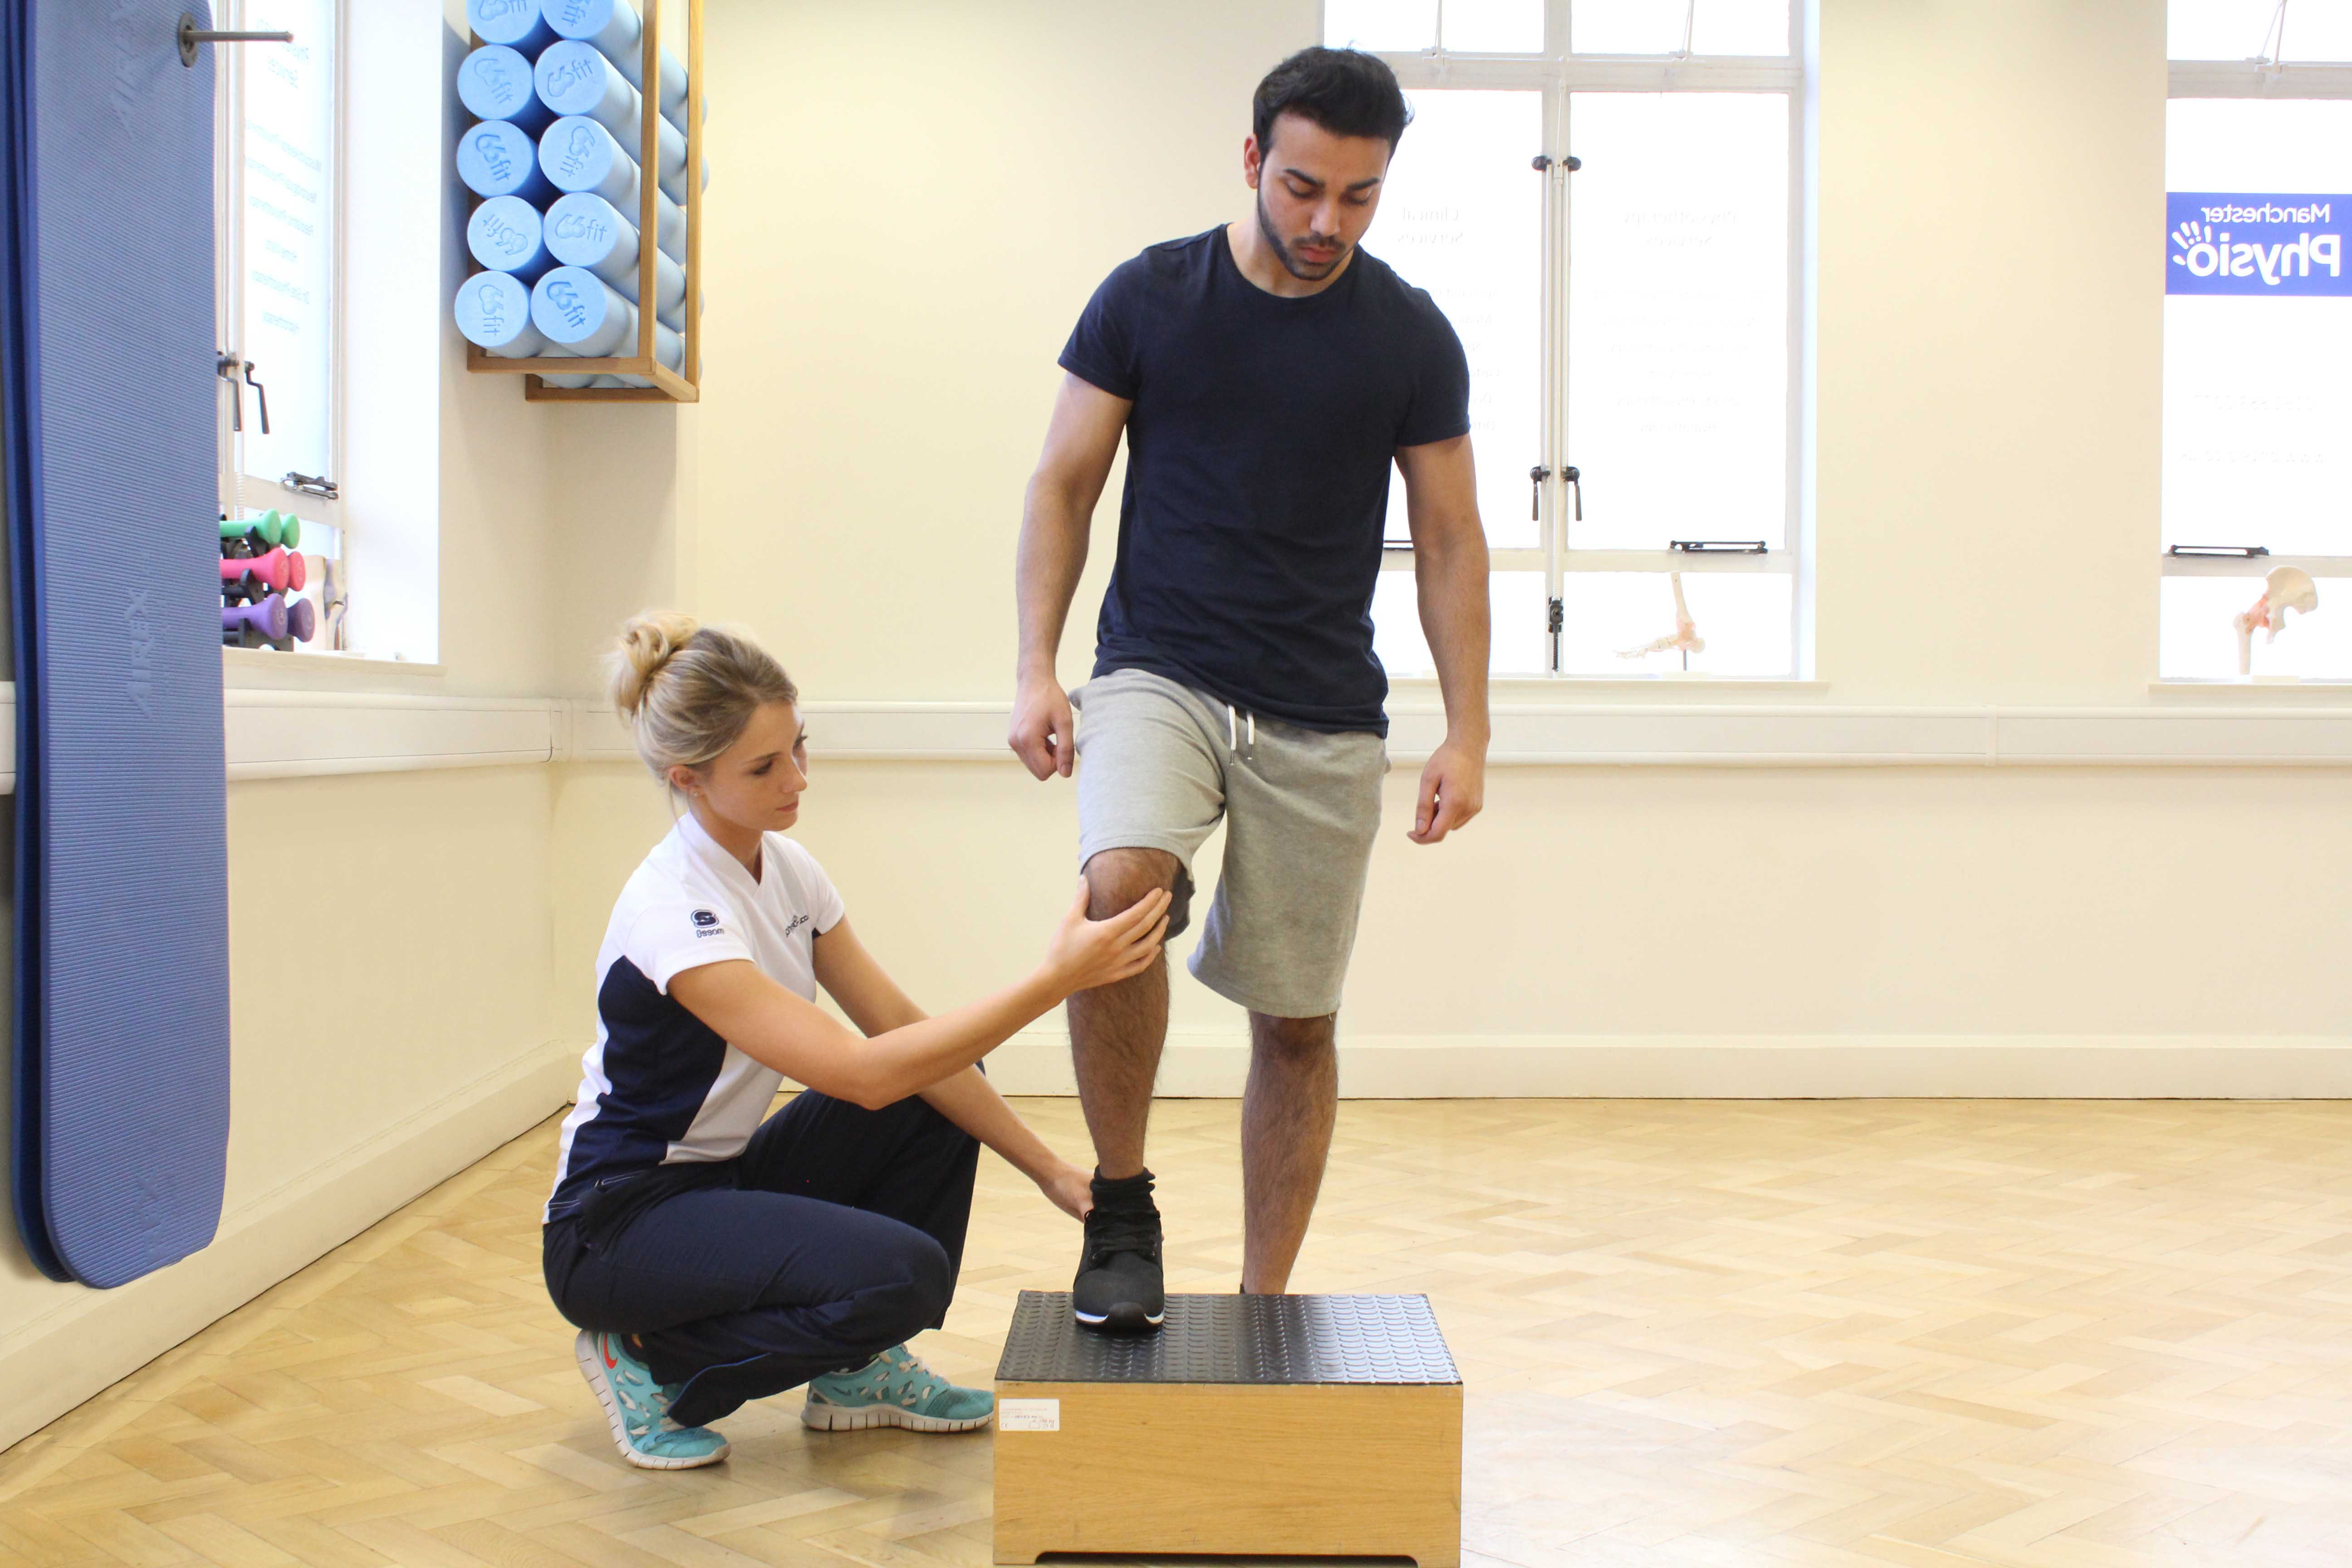 Functional strengthening ankle exercises supervised by MSK therapist